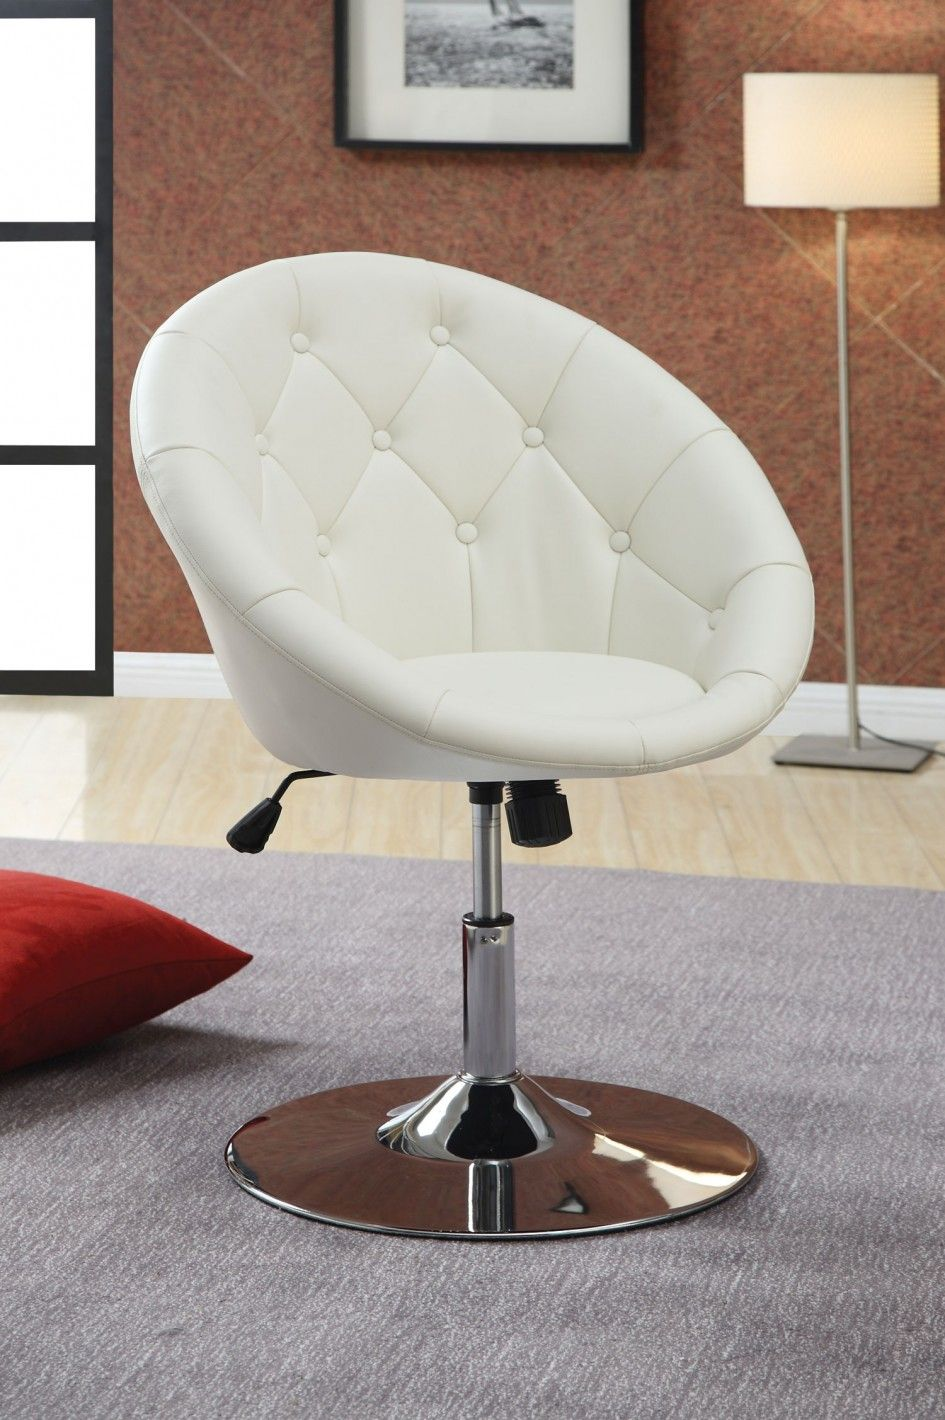 Modern Uphosltered White Leather Swivel Desk Chair With Tufted Back And  Chrome Finish Round Metal BaseModern Uphosltered White Leather Swivel Desk Chair With Tufted  . Living Room Desk Chair. Home Design Ideas